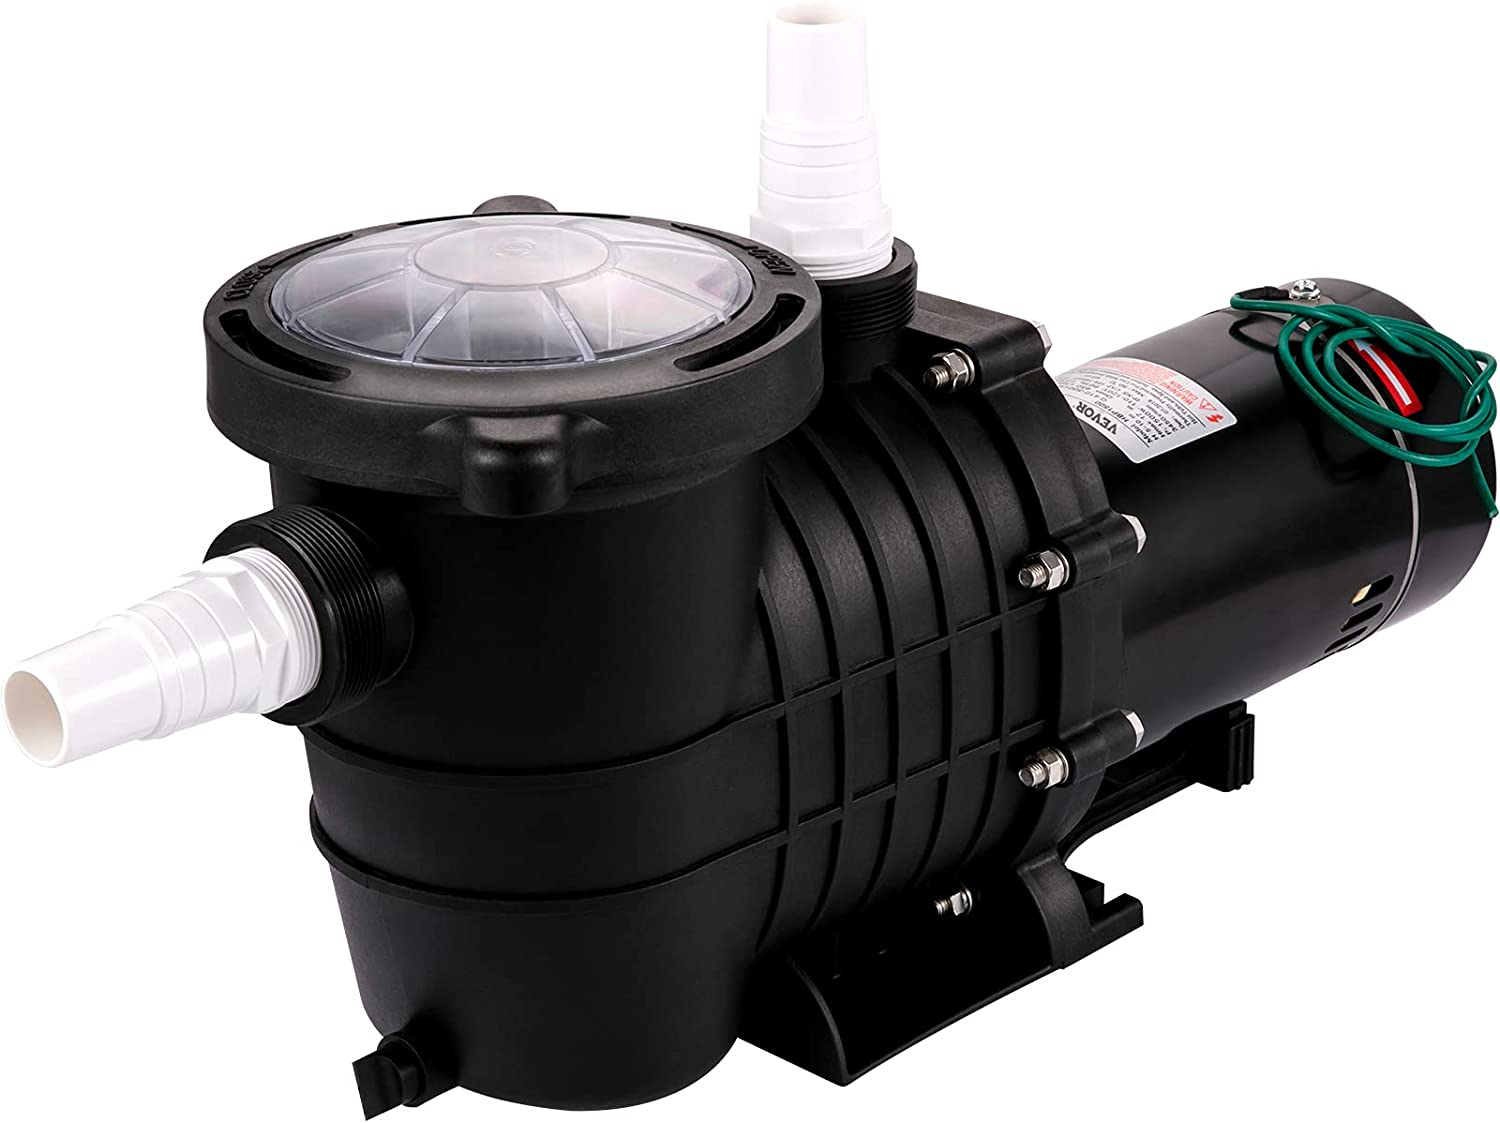 Finally popular brand VEVOR Pool New Free Shipping Pump 2HP Swimming in 1500W 6657GPH Above